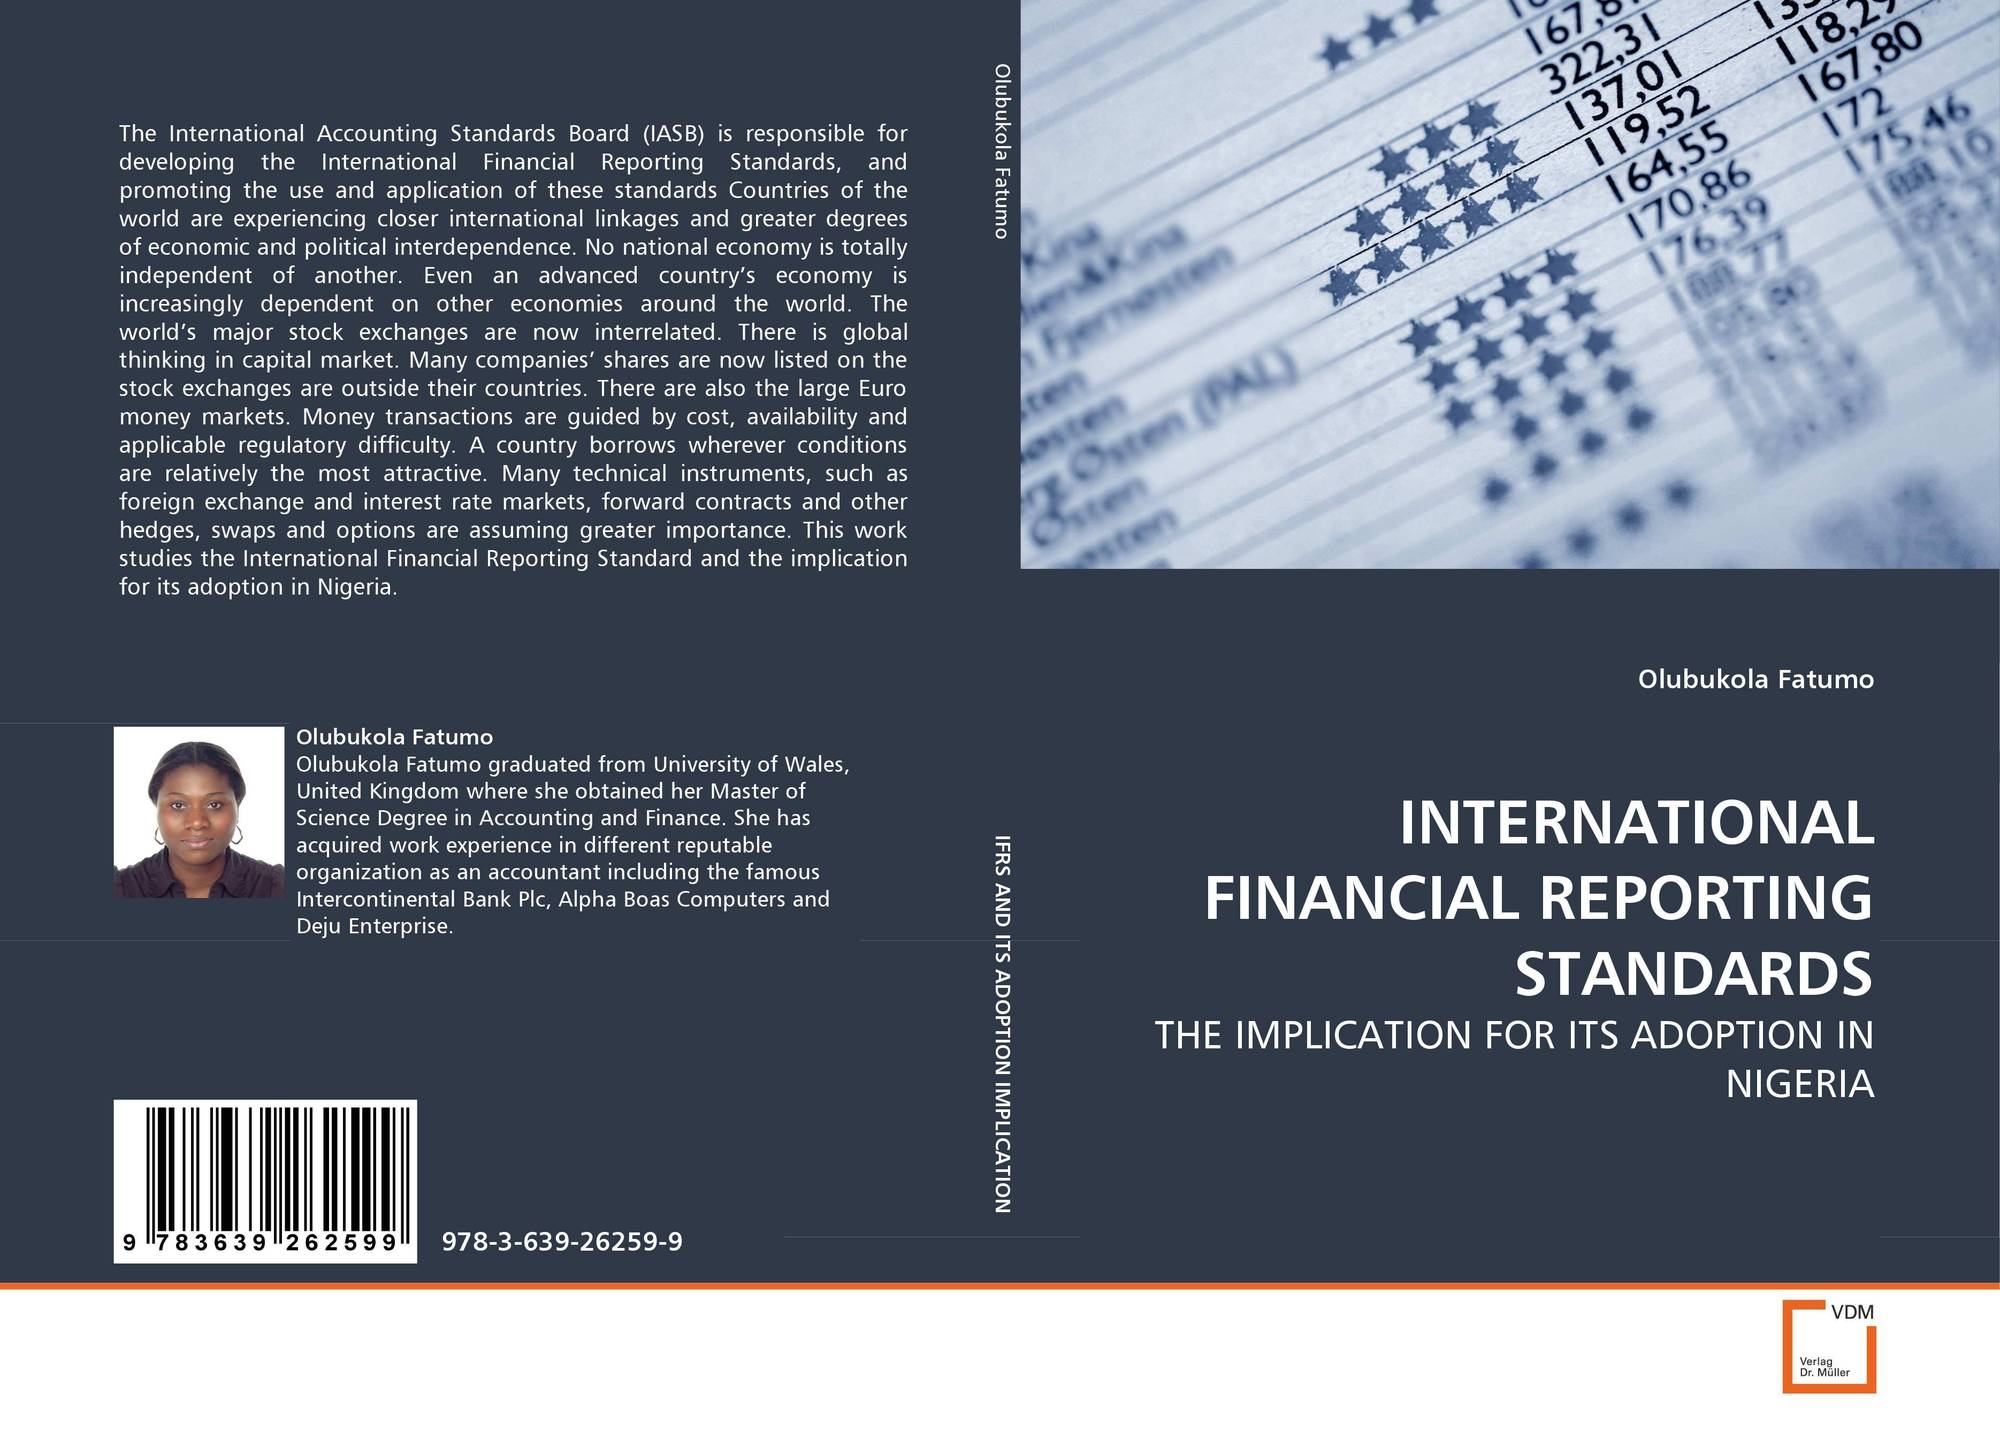 the international accounting standards board International financial reporting standards (ifrs) are a set of international accounting standards stating how particular types of transactions and other events should be reported in financial statements.